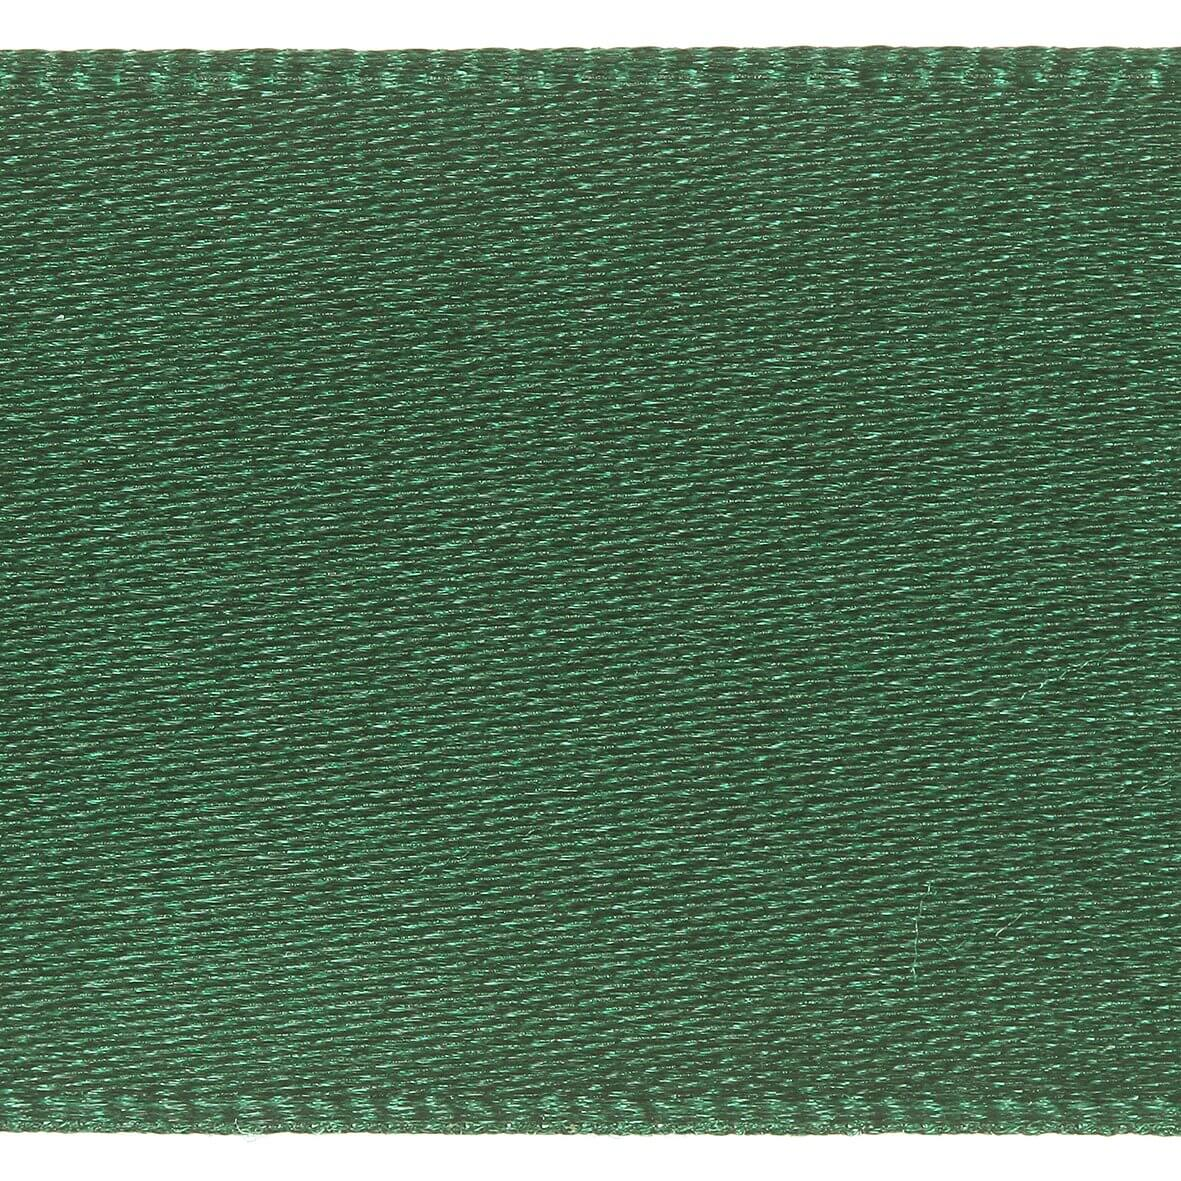 10mm Berisfords Satin Ribbon - Forest Colour 969